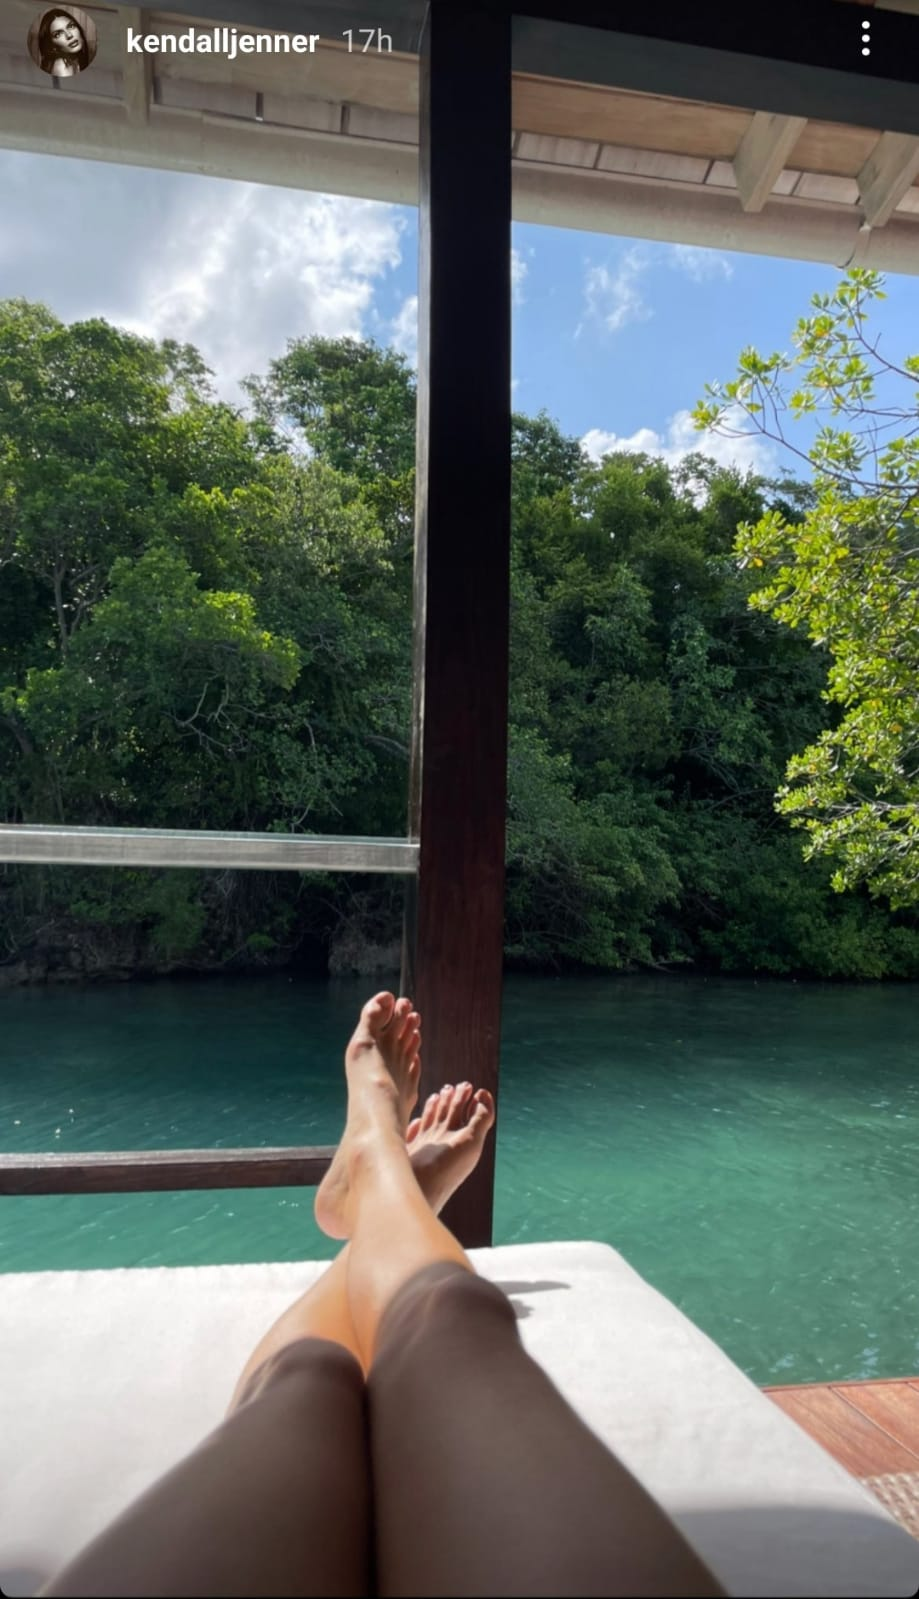 Spotted! Justin Bieber, Kendall Jenner & more in Jamaica